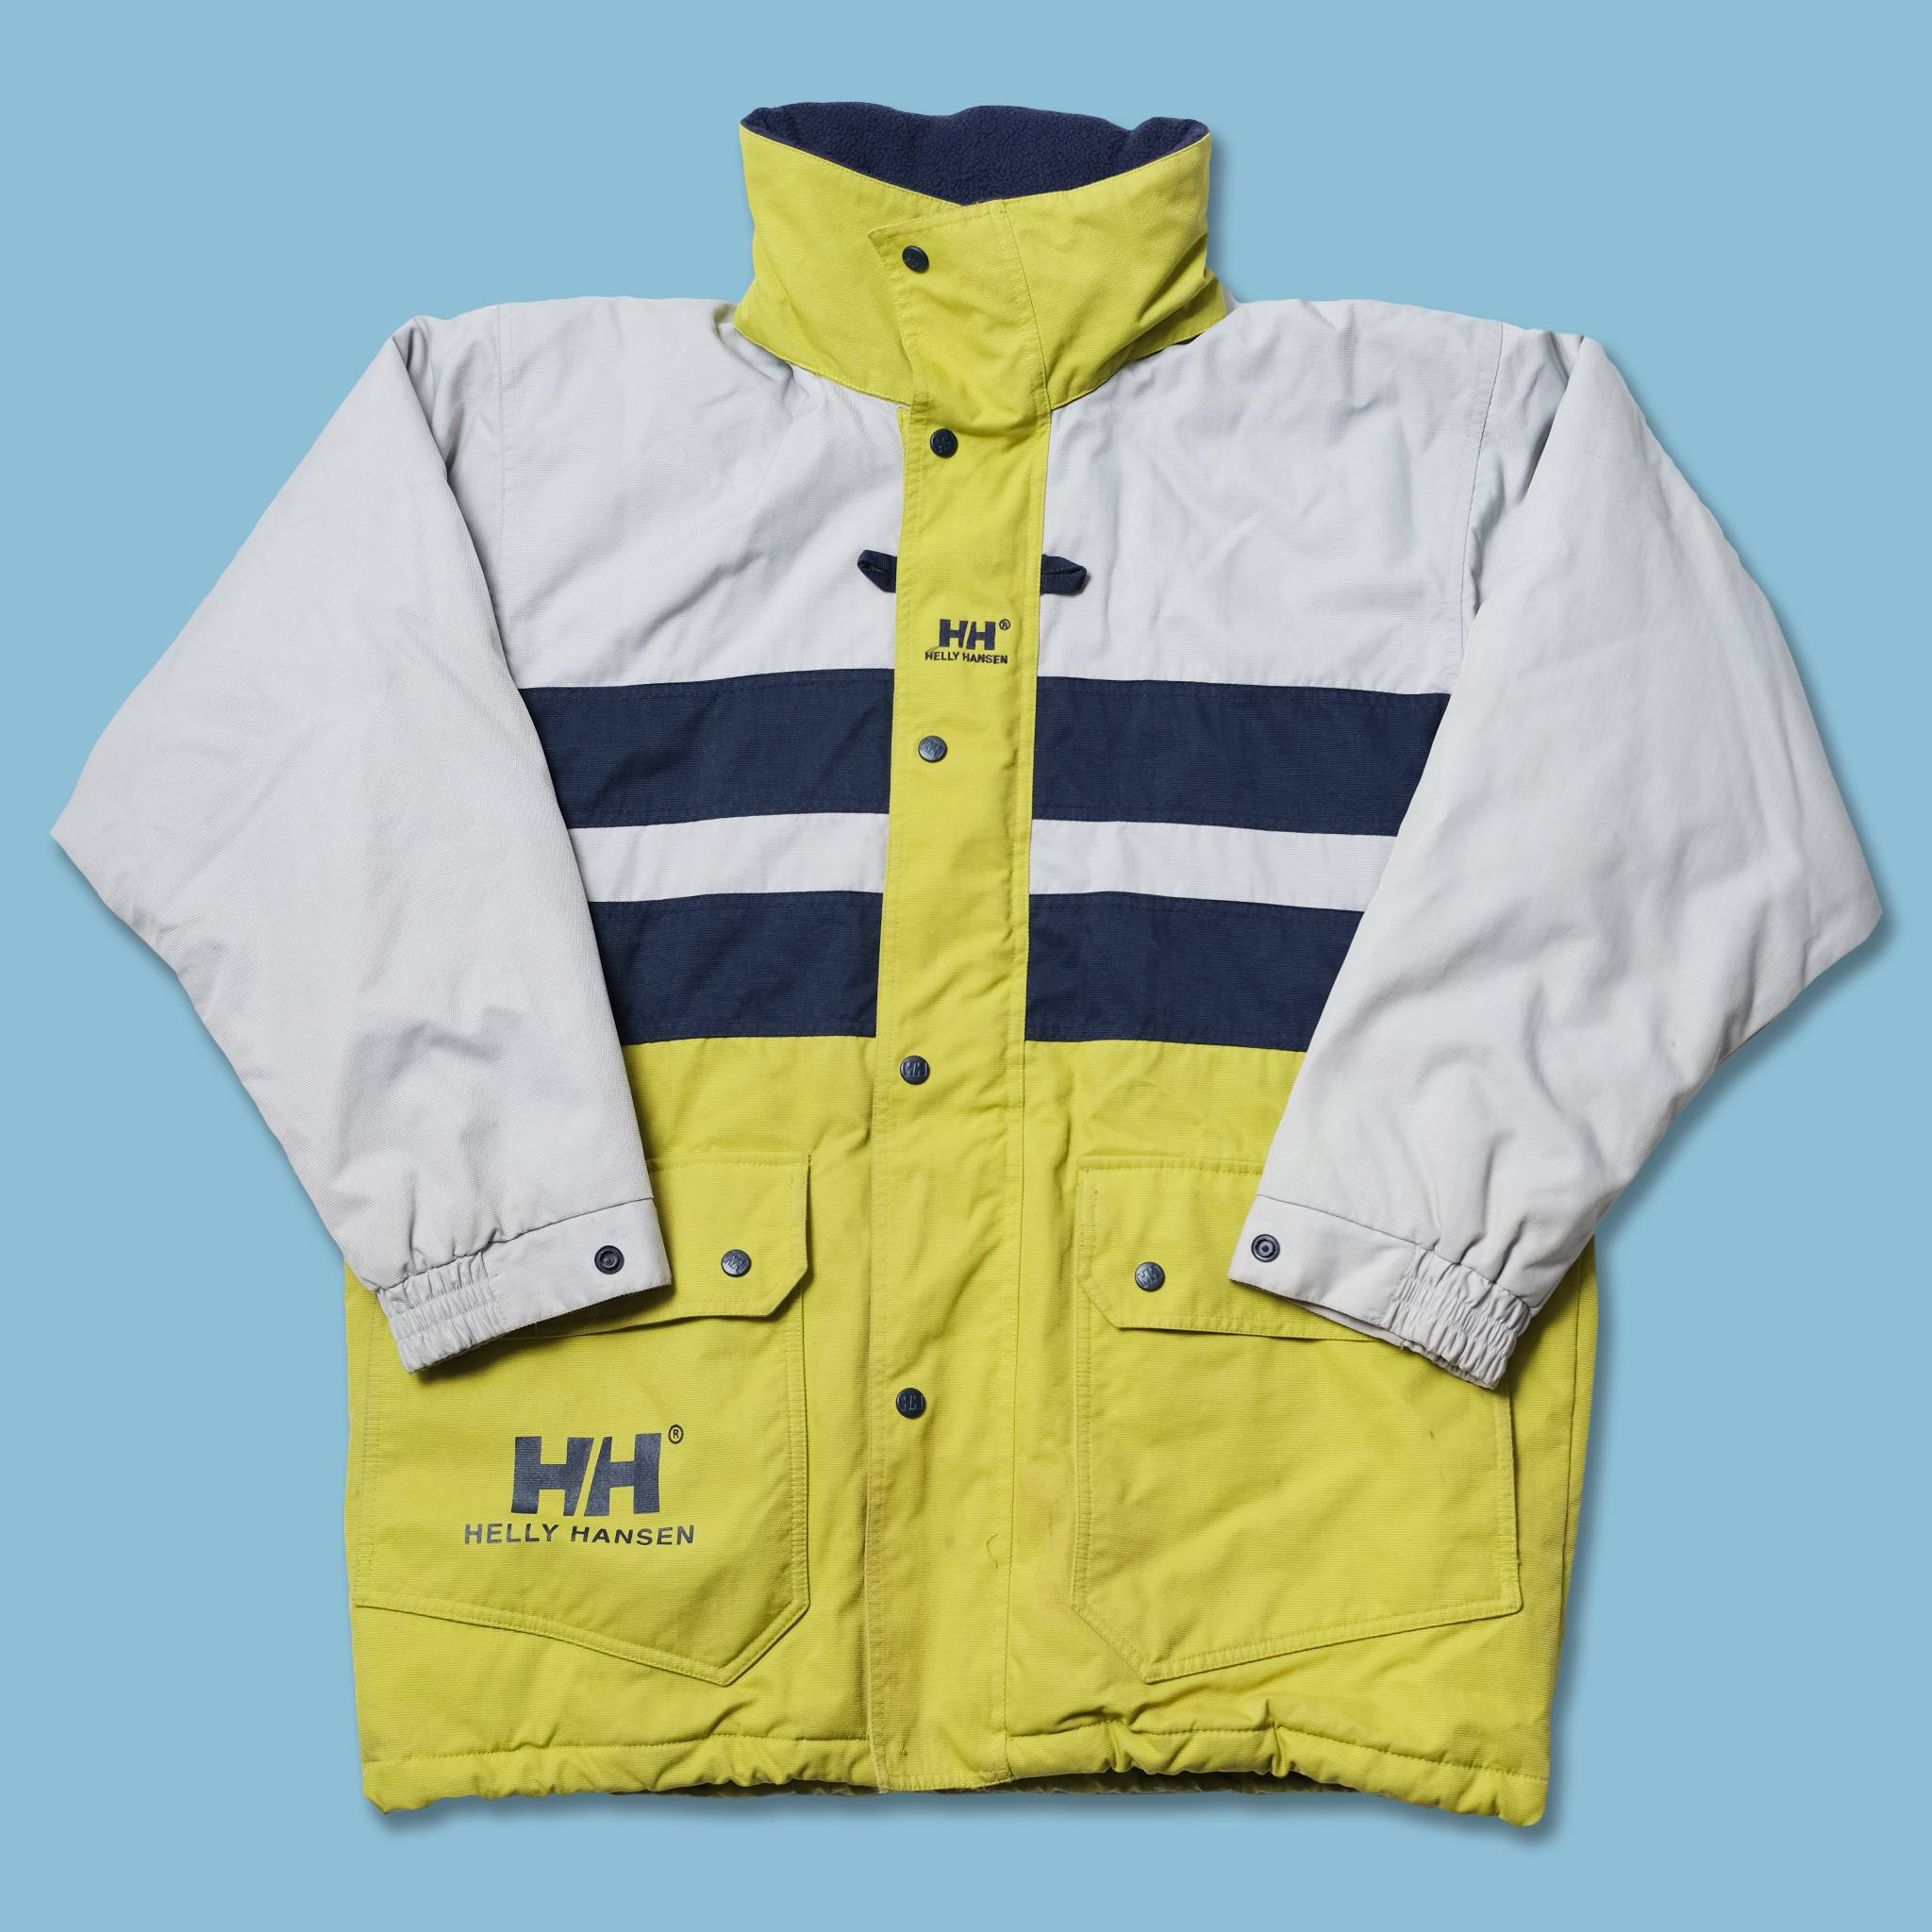 Vintage Helly Hansen Sailing Jacket Large / XLarge